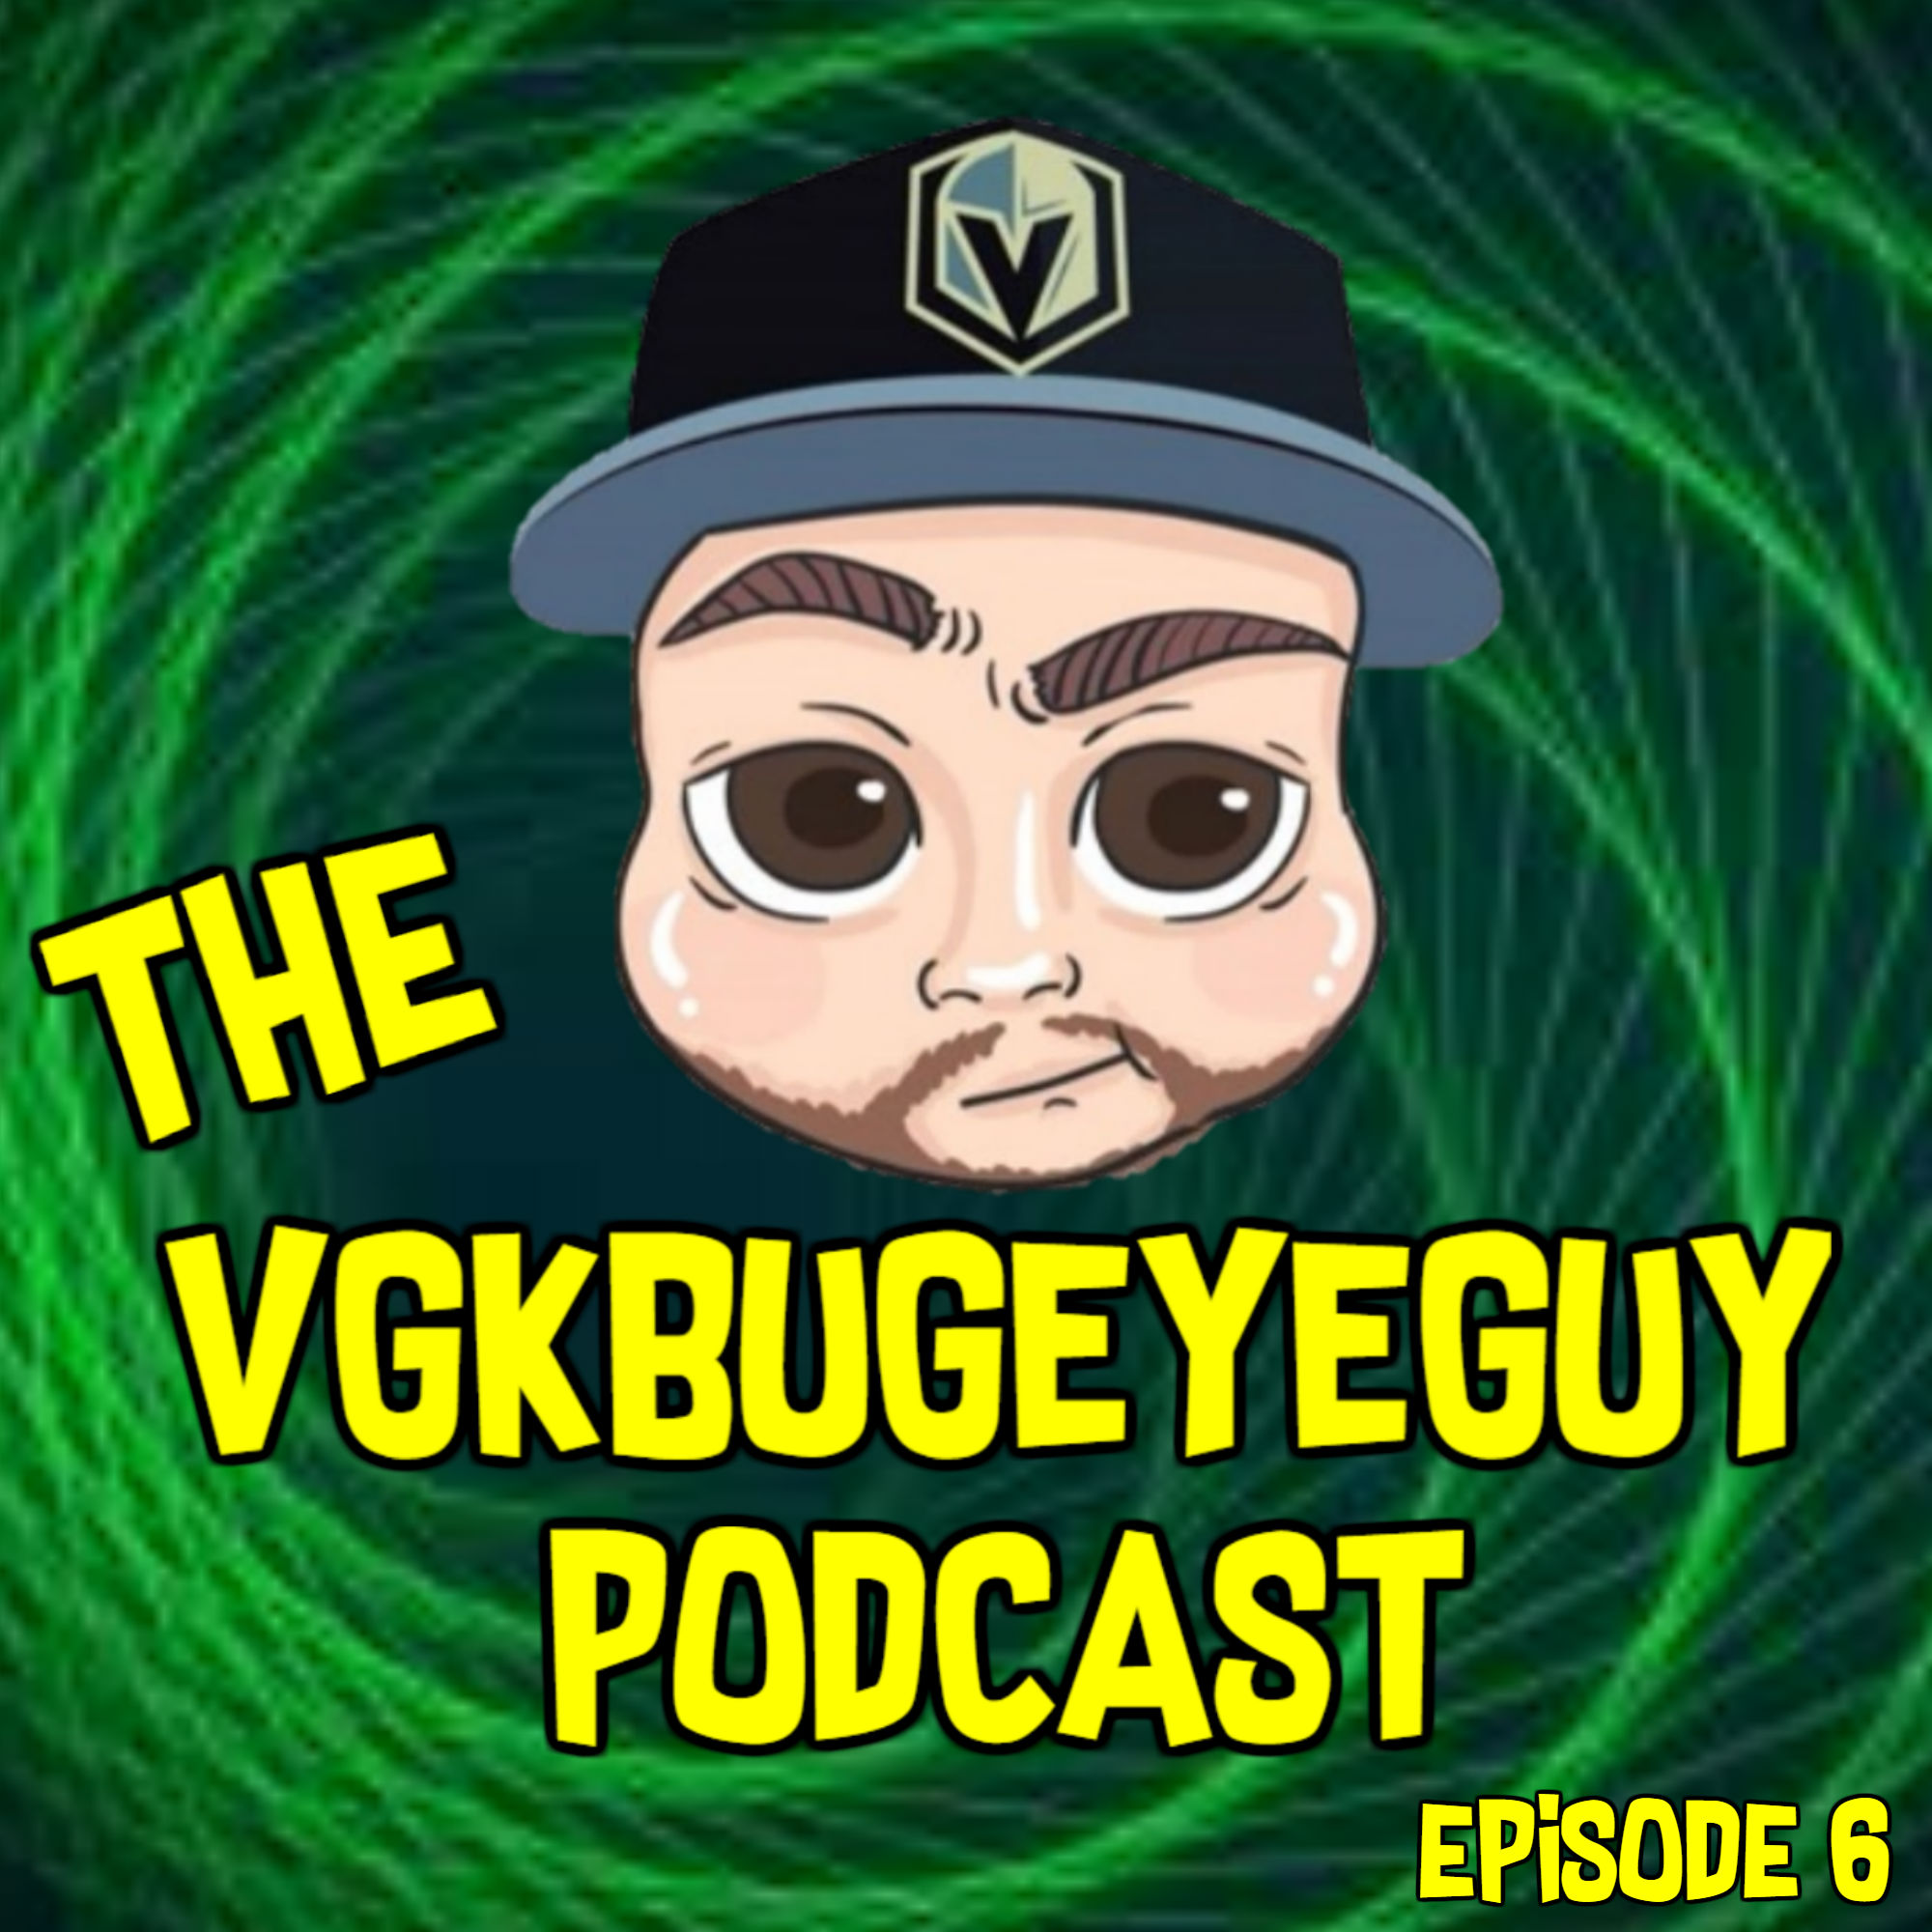 The VGKbugeyeGuy Podcast Episode 6